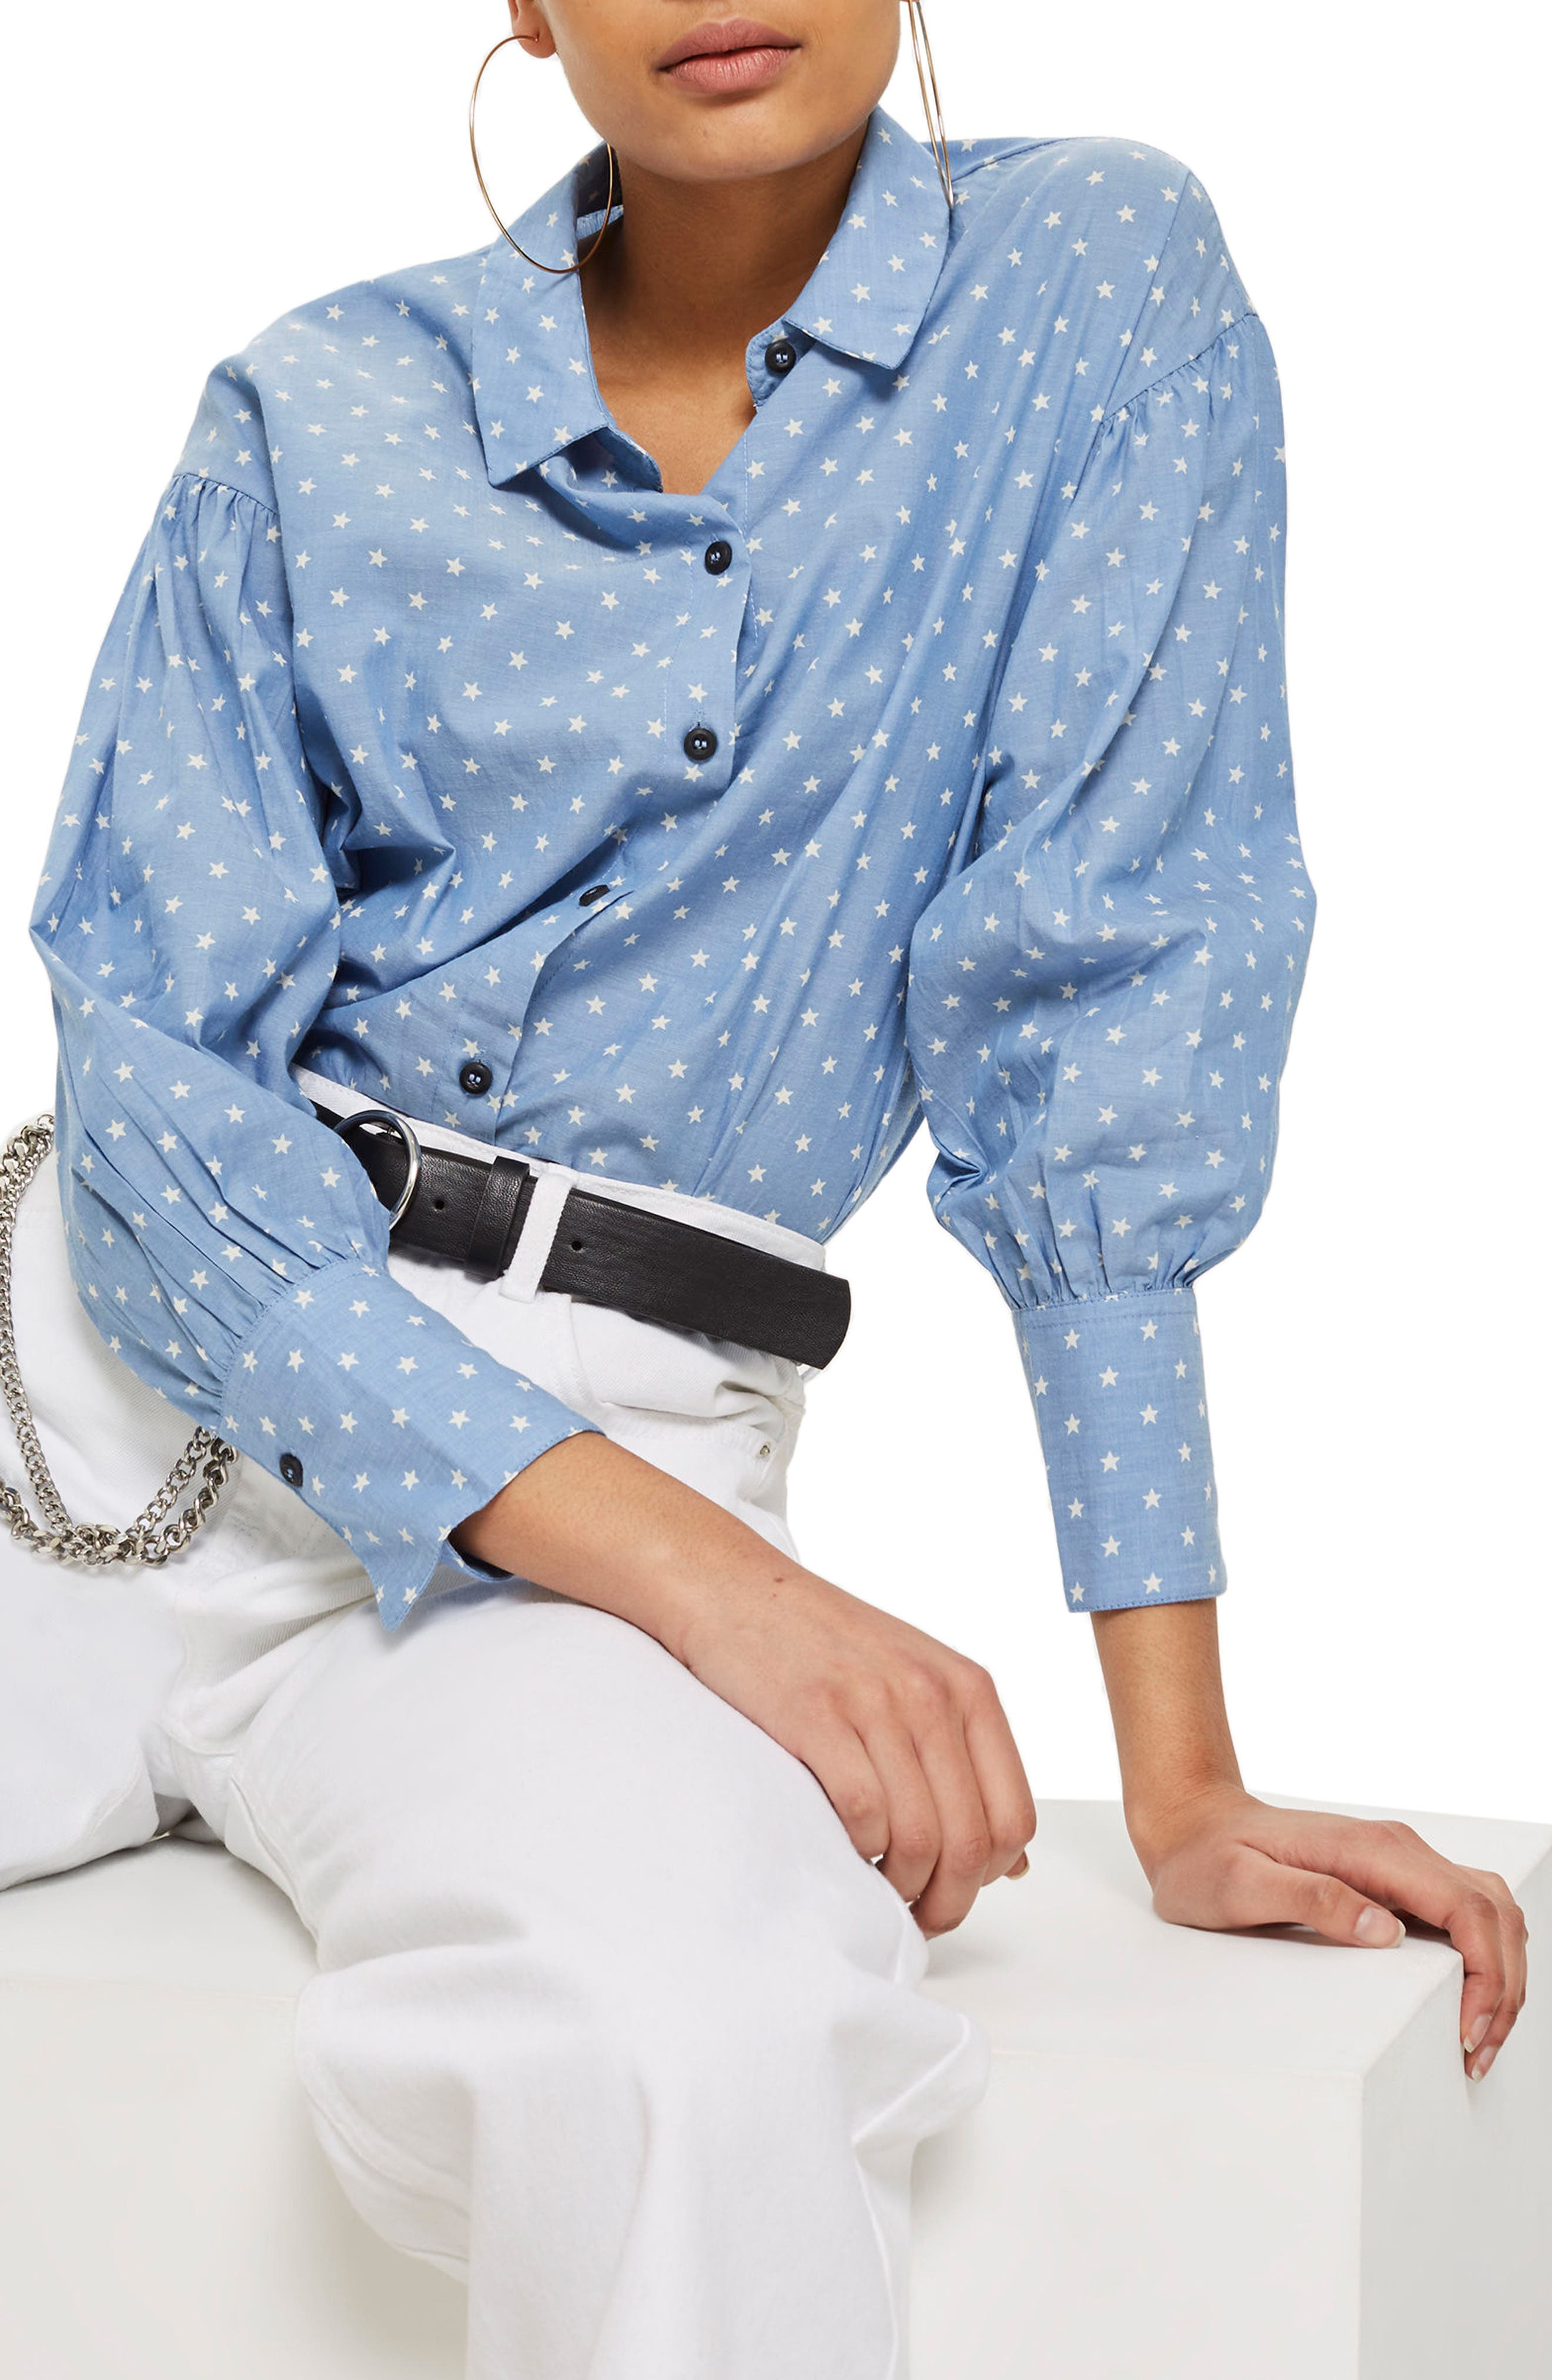 Star Print Chambray Shirt,                             Main thumbnail 1, color,                             400